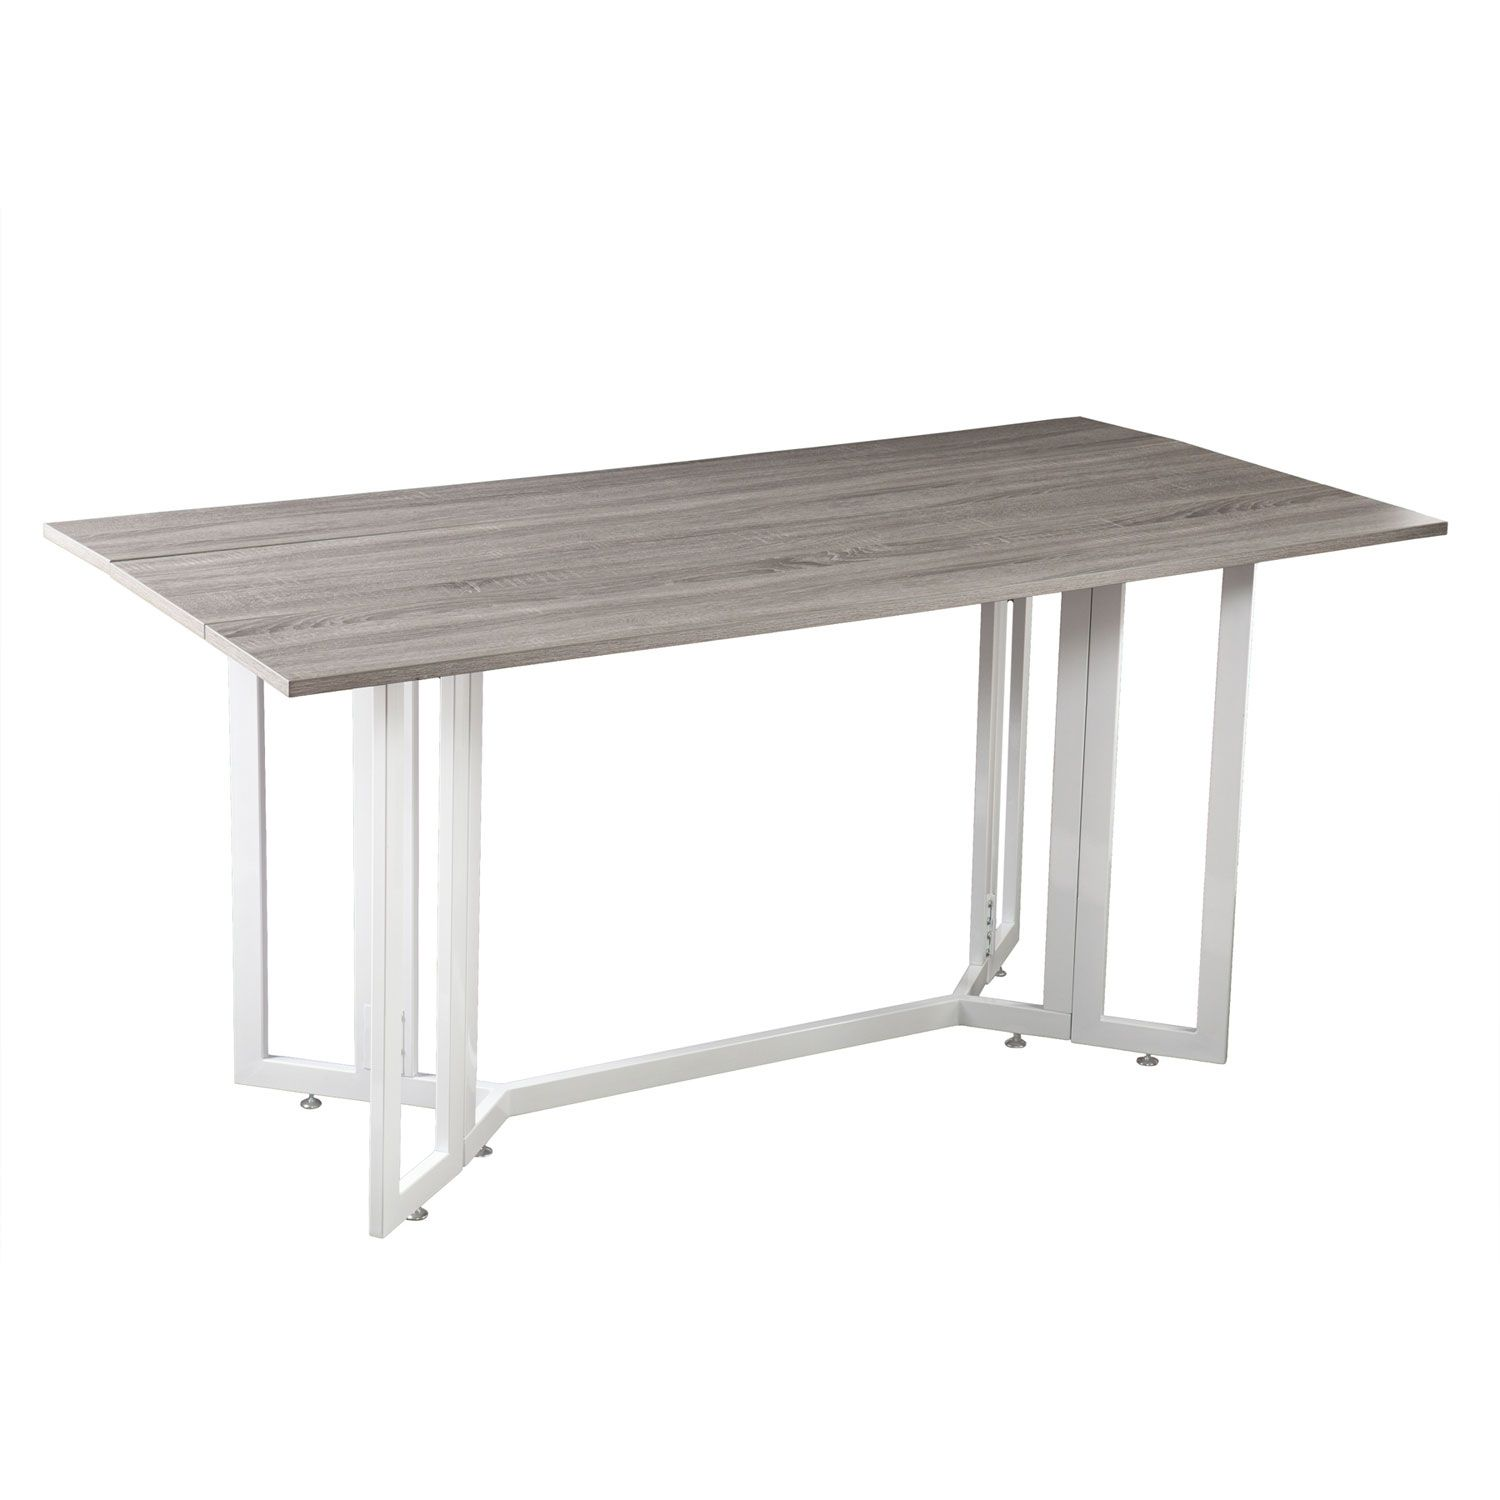 Driness Weathered Gray Drop Leaf Table Holly U0026 Martin Dining Tables Dining  Tables Kitchen